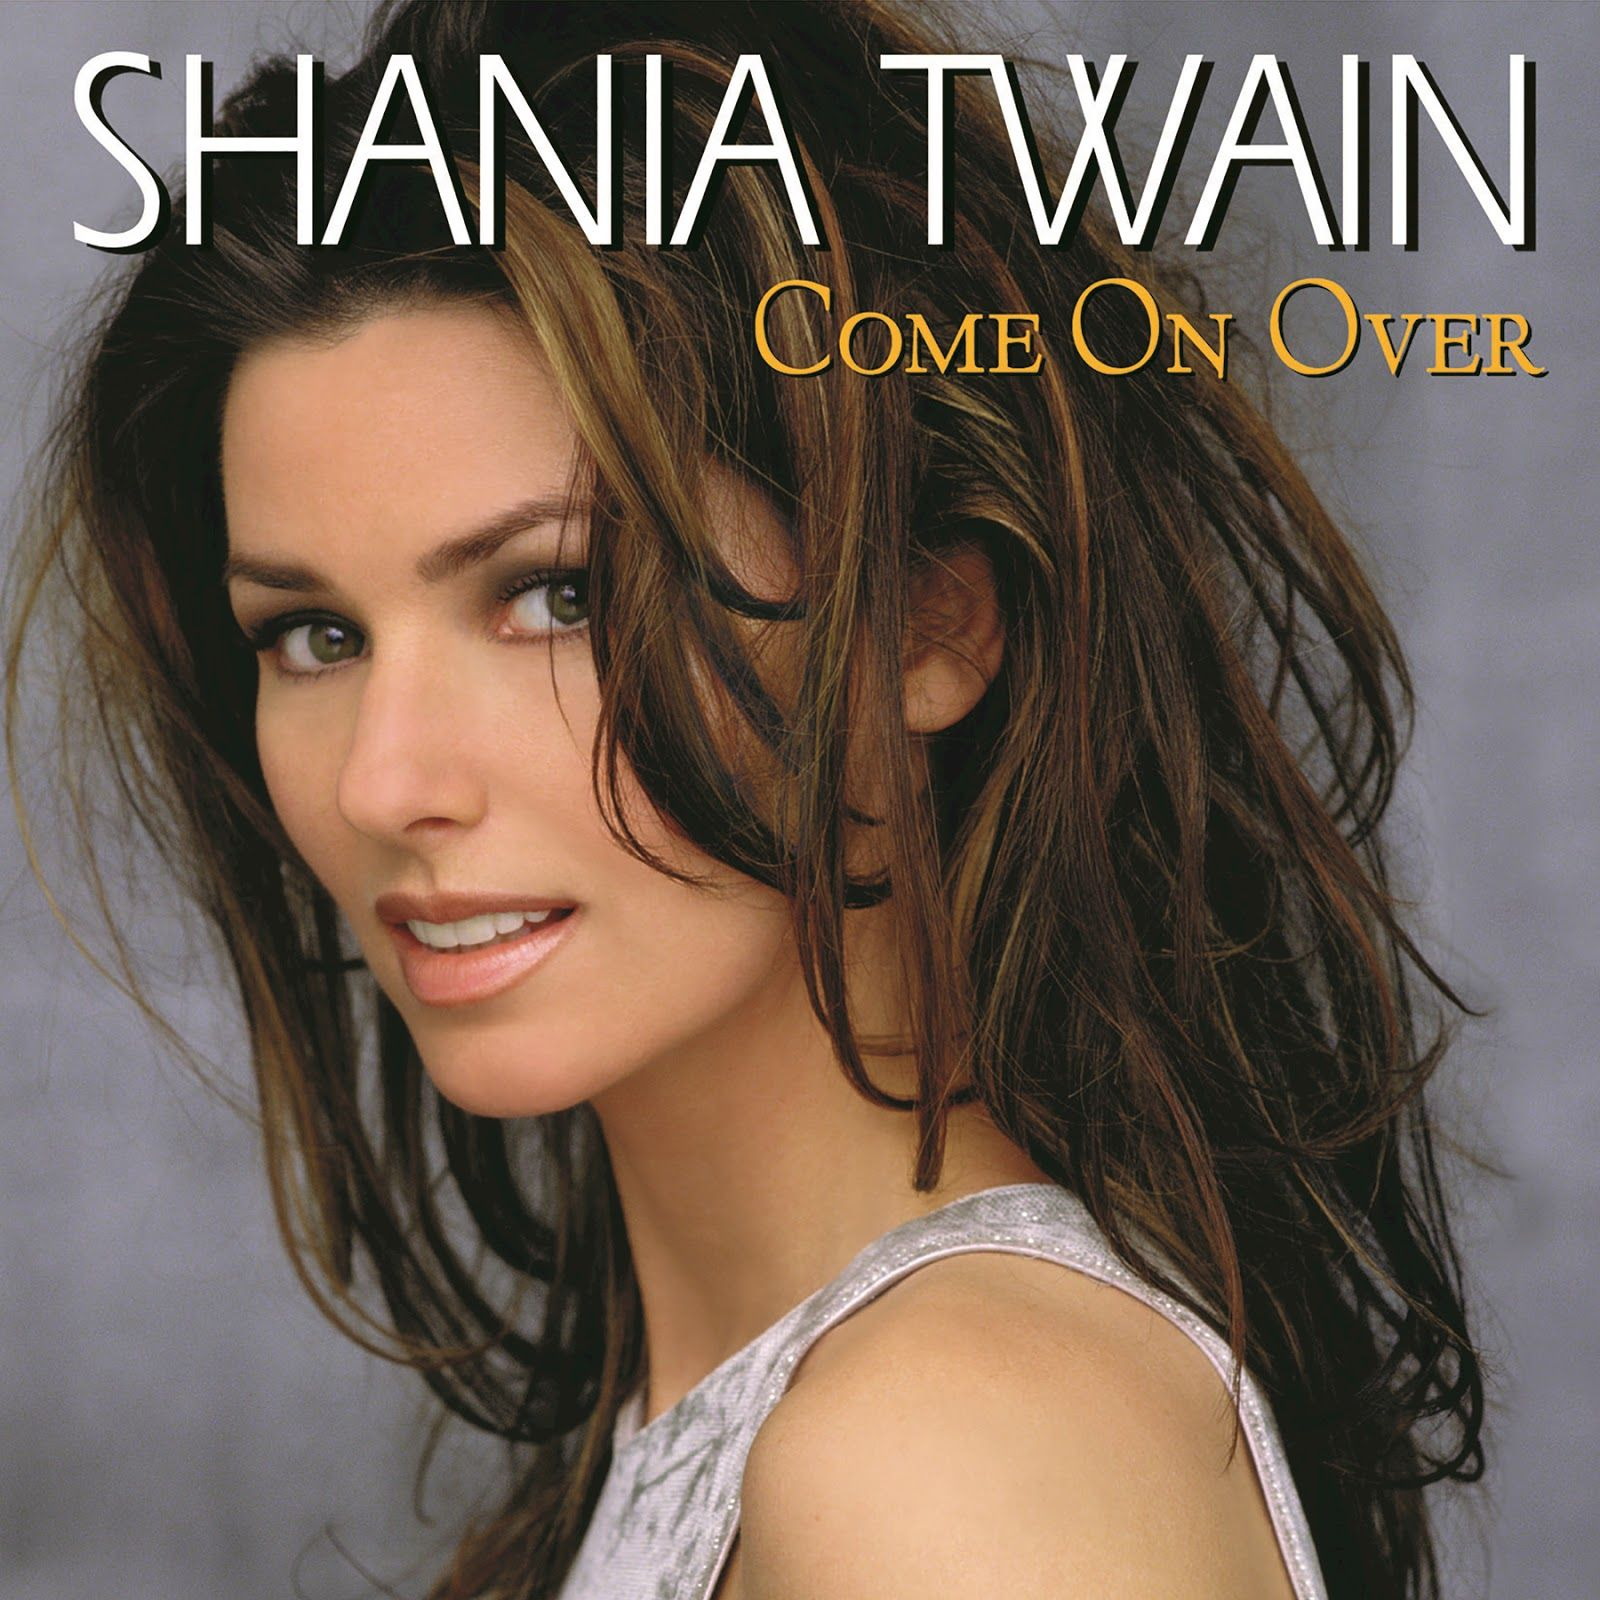 Browse Free Piano Sheet Music by Shania Twain.